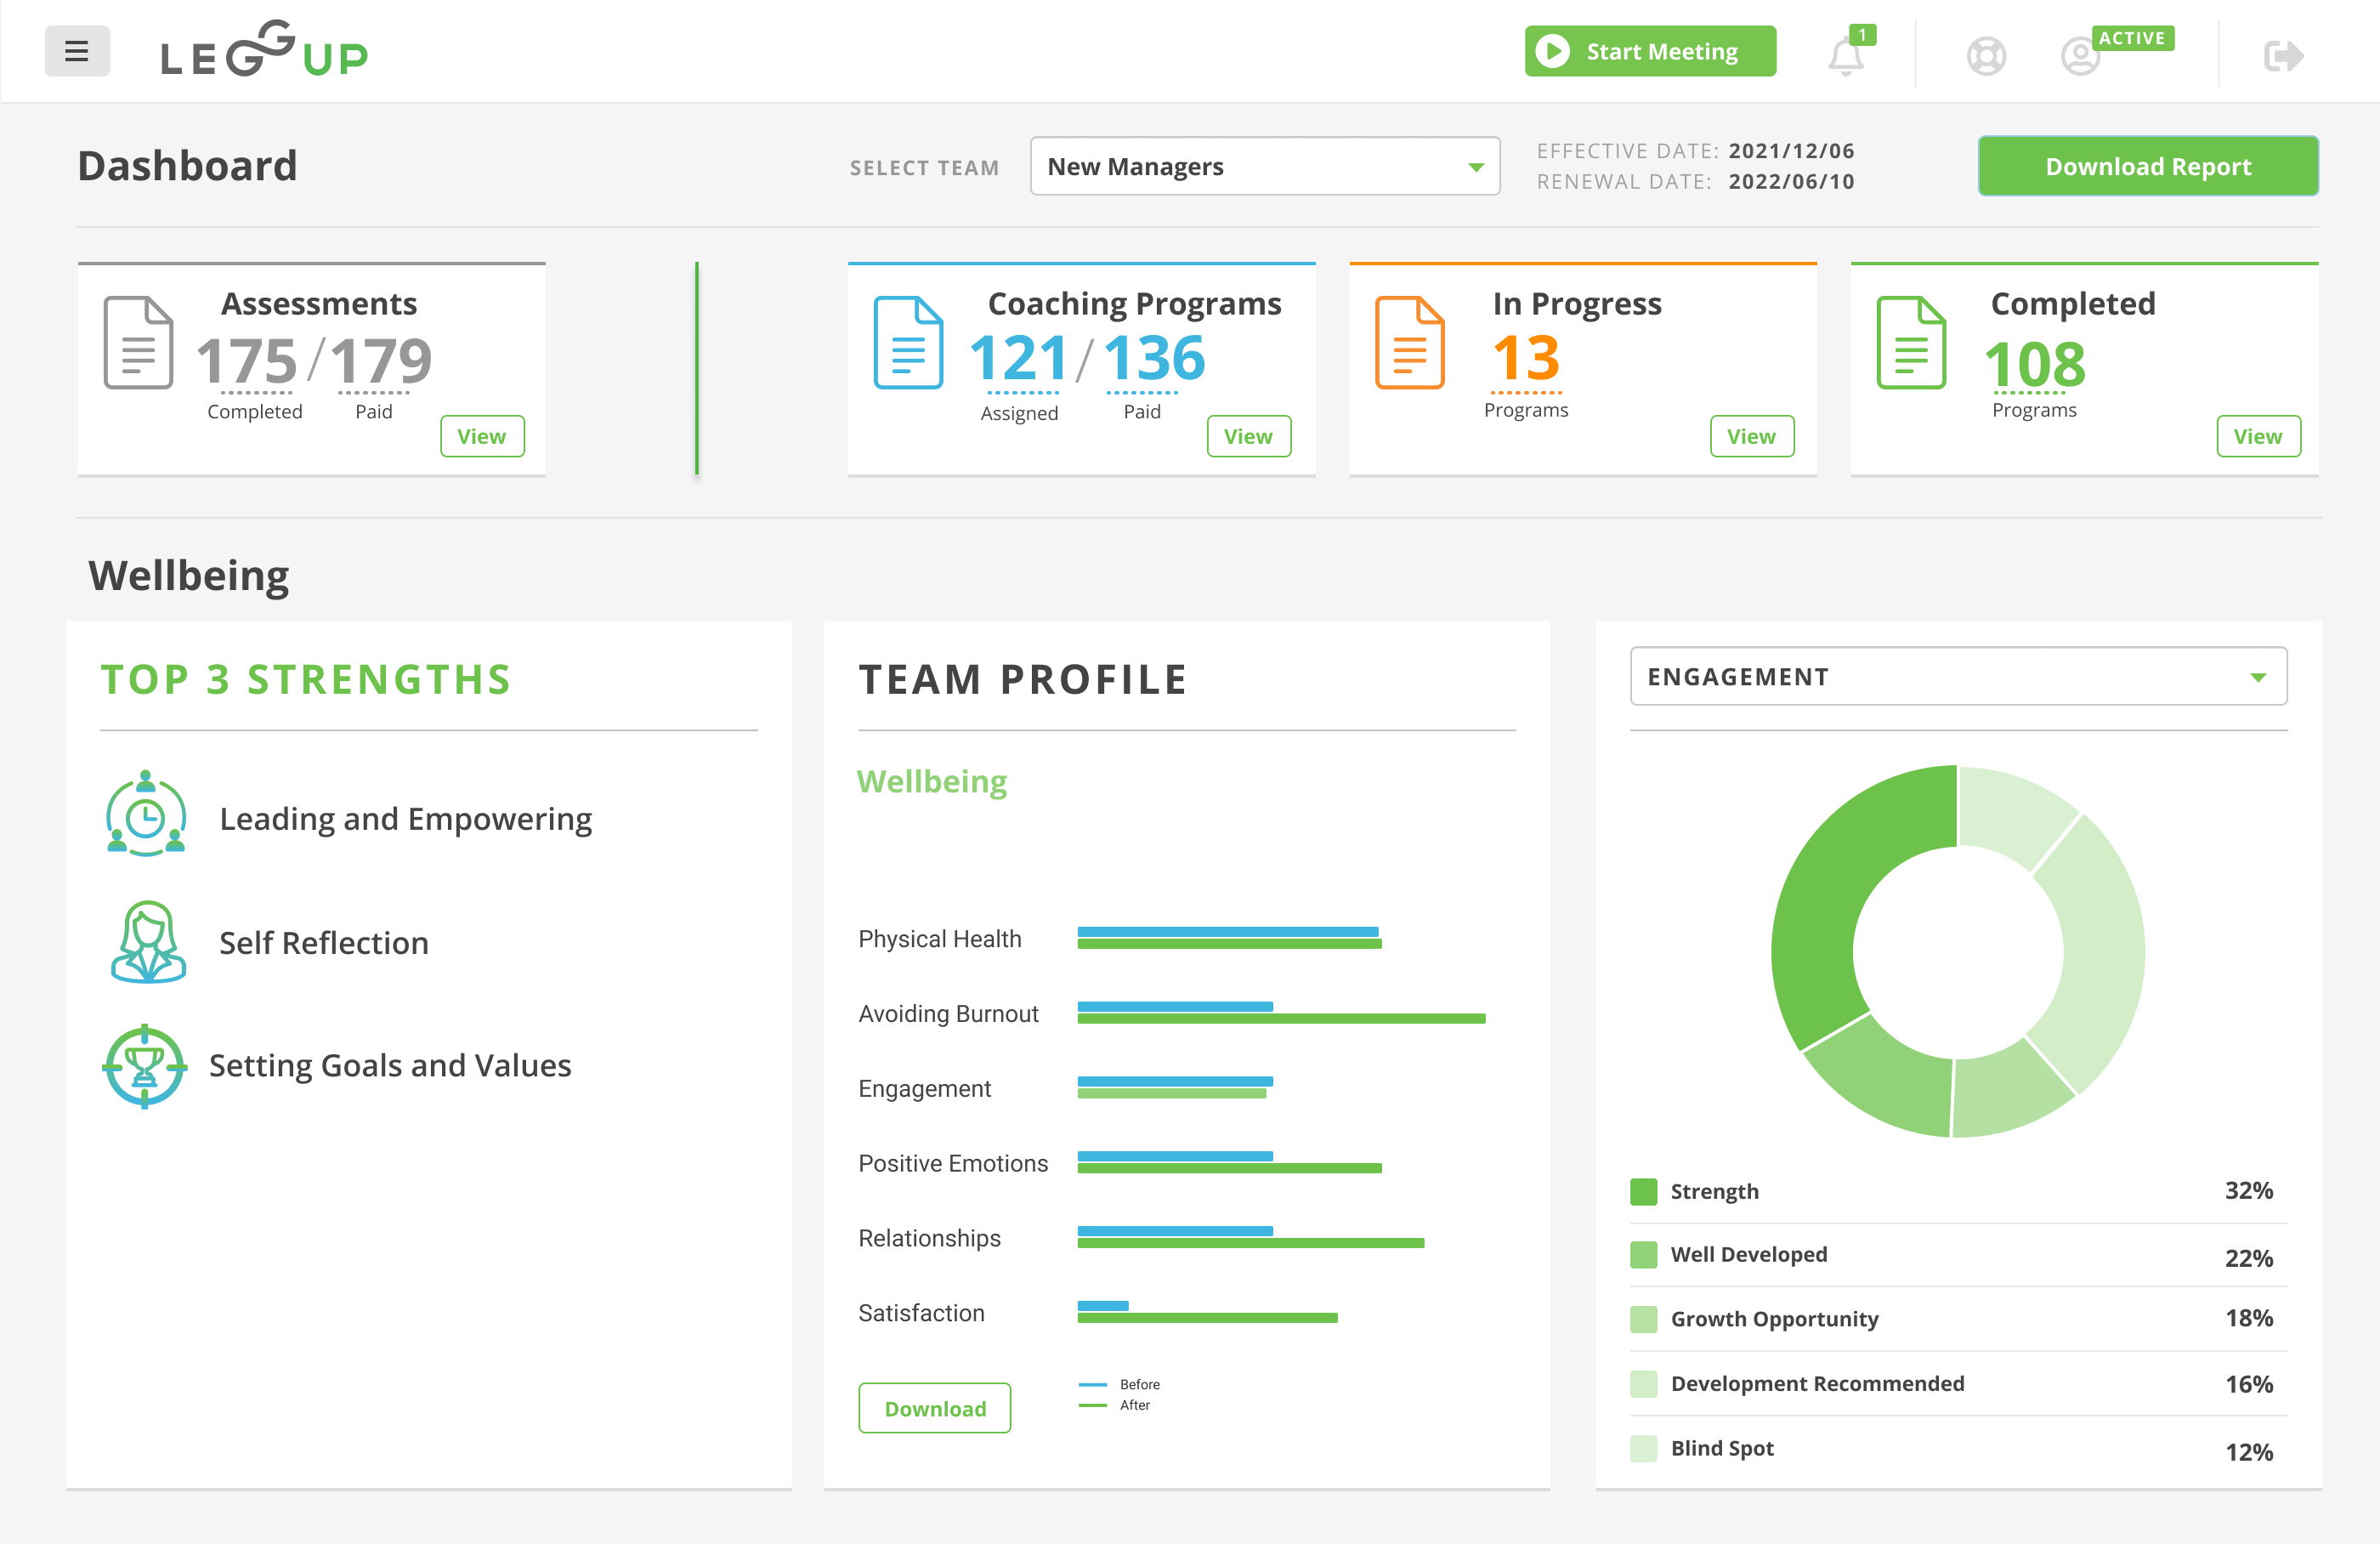 The Wellbeing section of the LeggUP leadership dashboard for large group employers